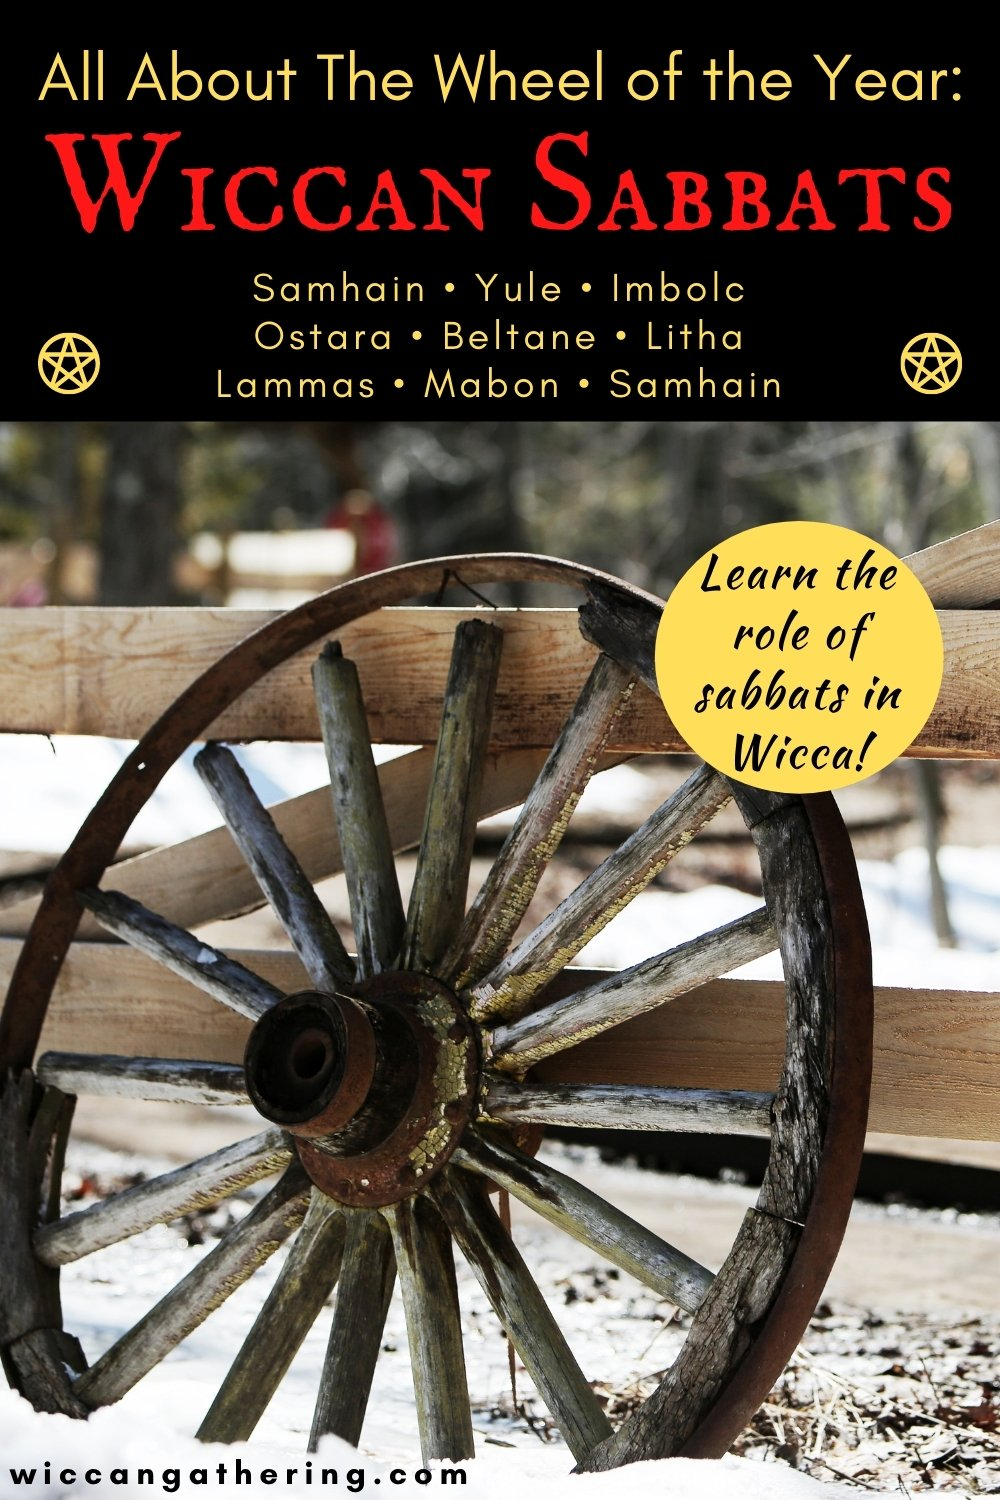 Wiccan Sabbats Wheel of the Year